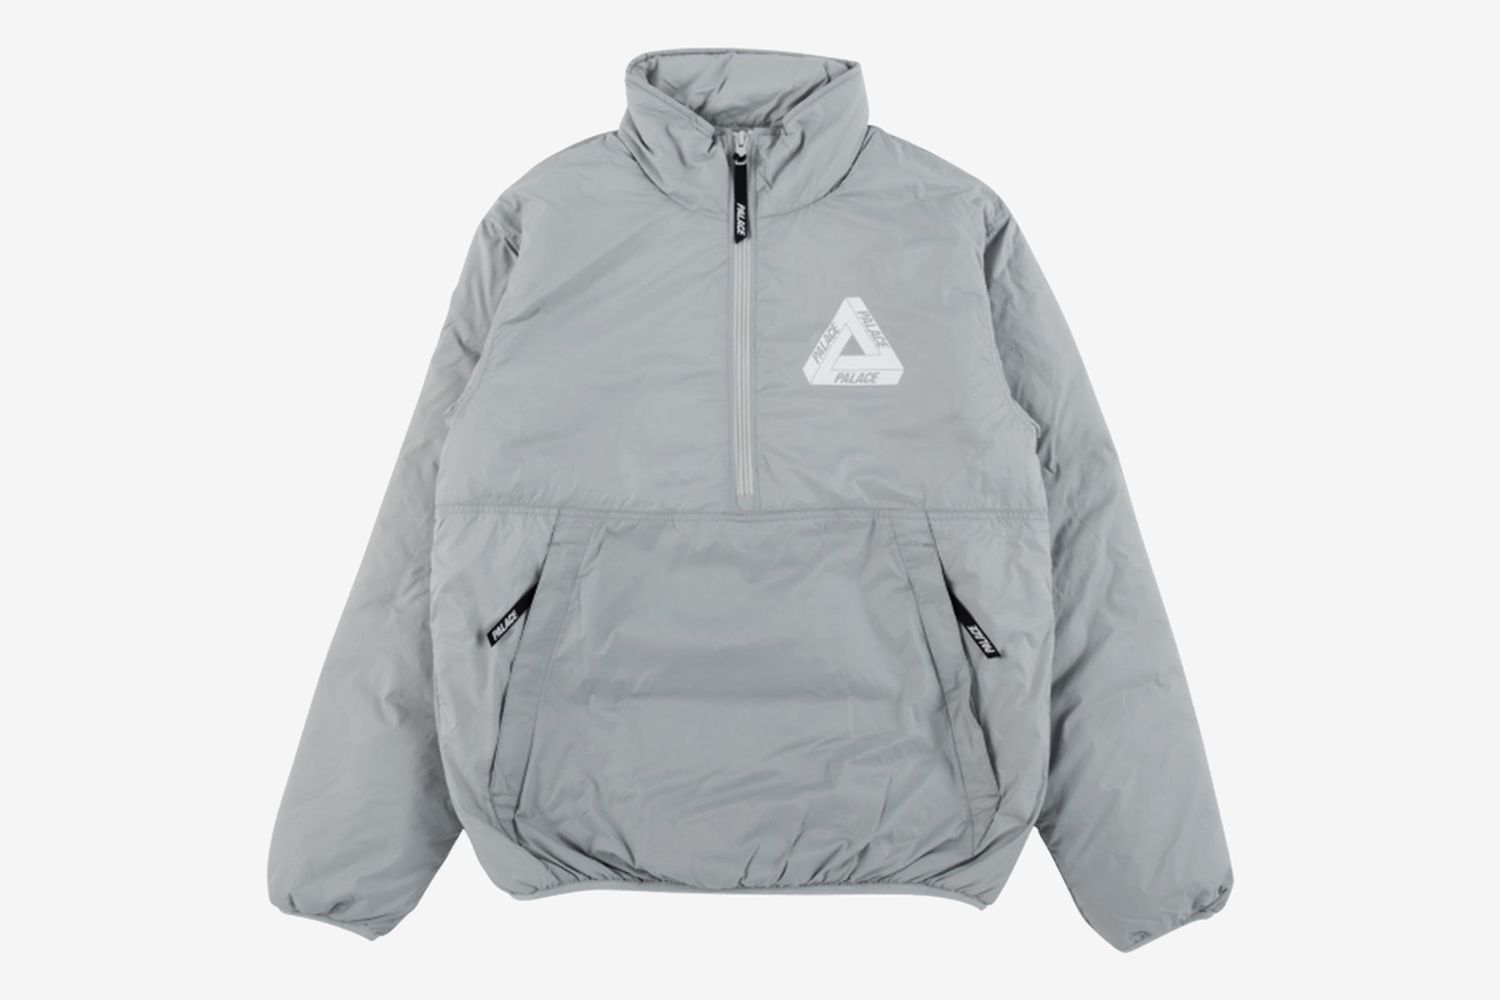 Packable 1/2 Zip Thinsulate Jacket